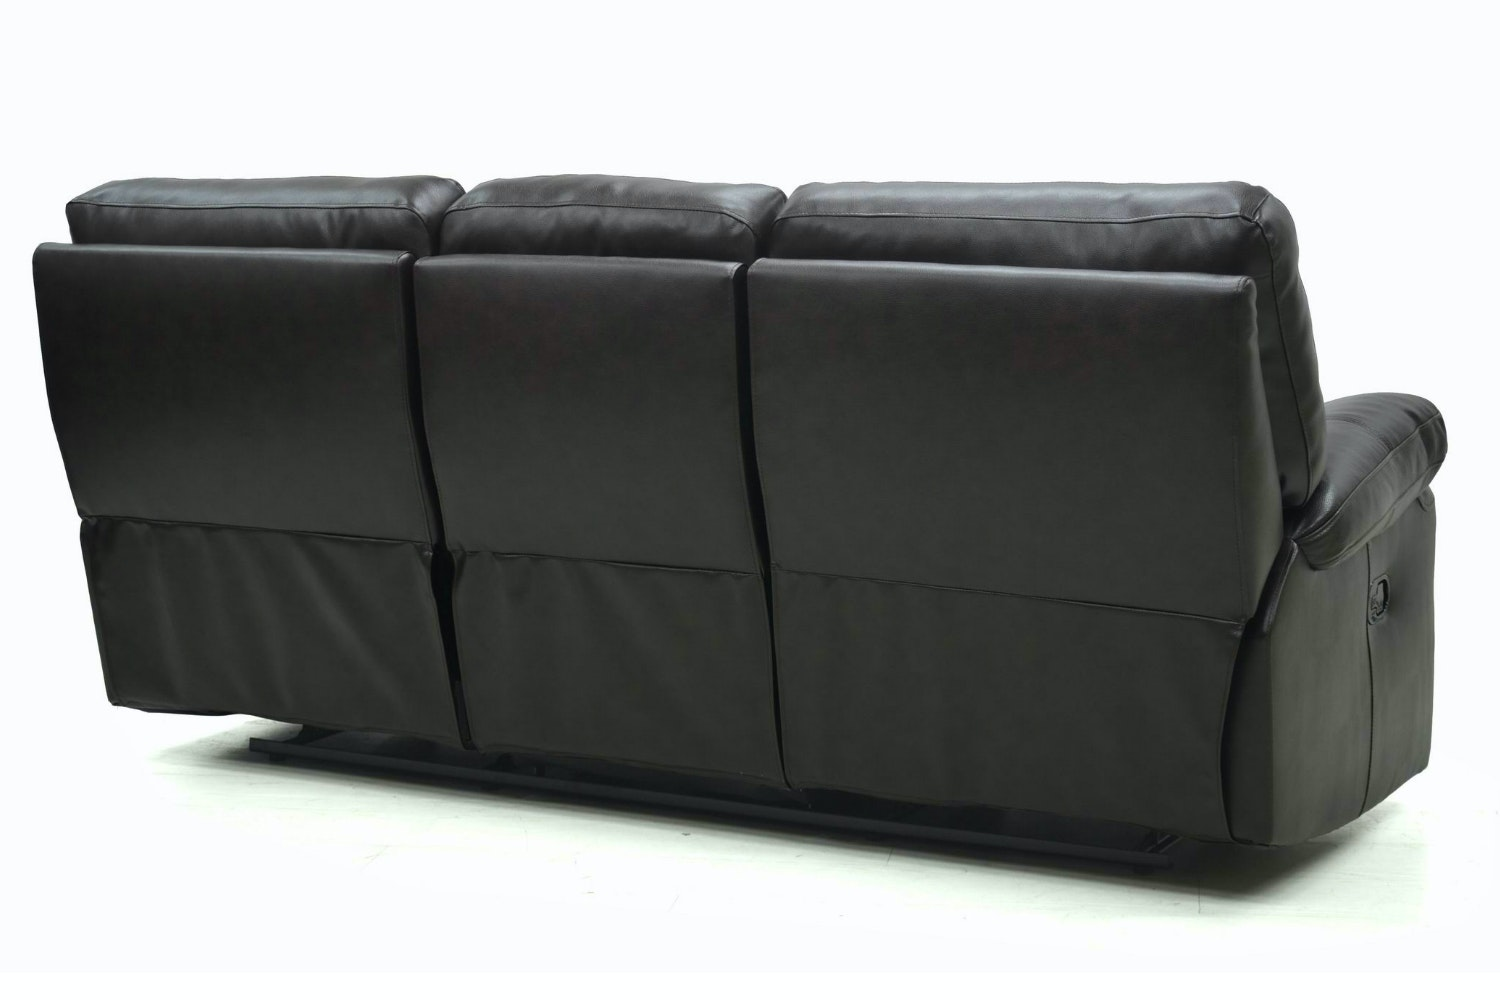 Cala 3 Seater Leather Recliner Sofa